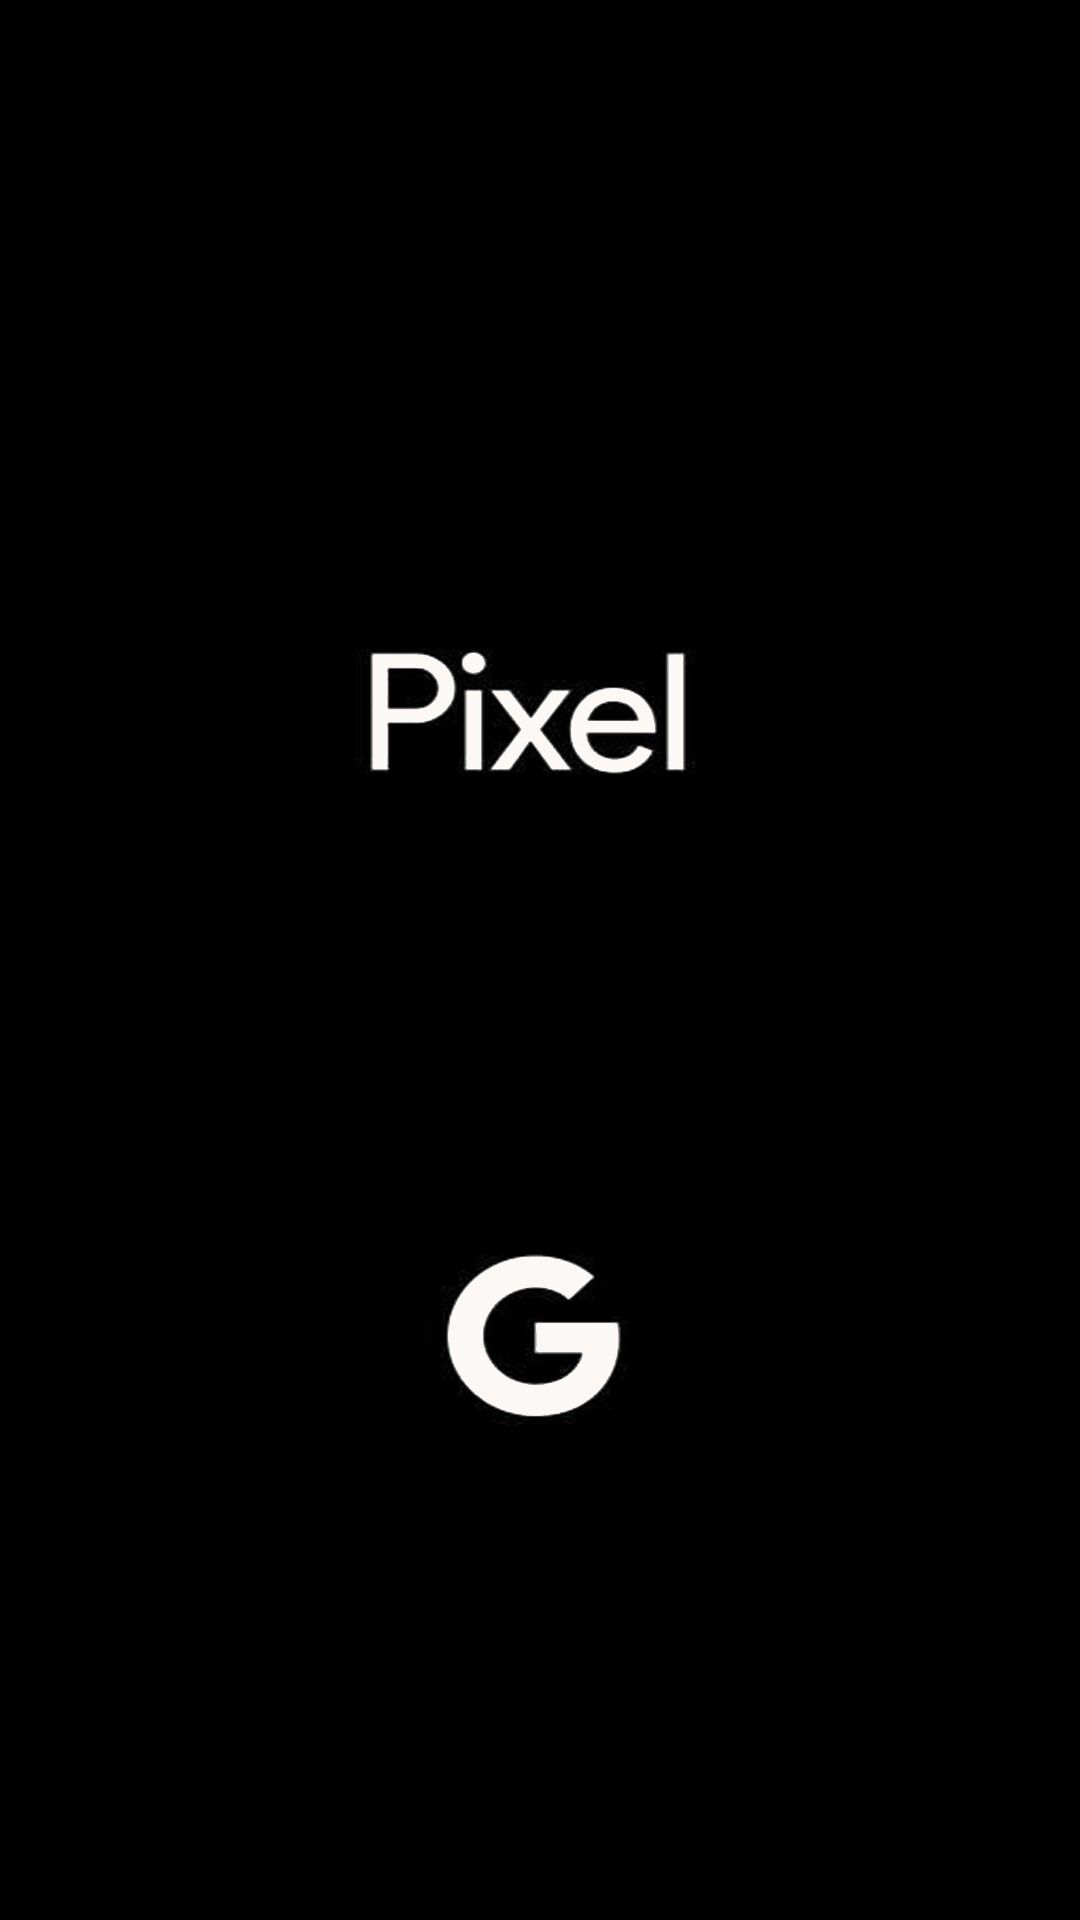 Pin By Syed D Luffy On Material Minimal Pattern Google Pixel Wallpaper Google Pixel Mobile Wallpaper